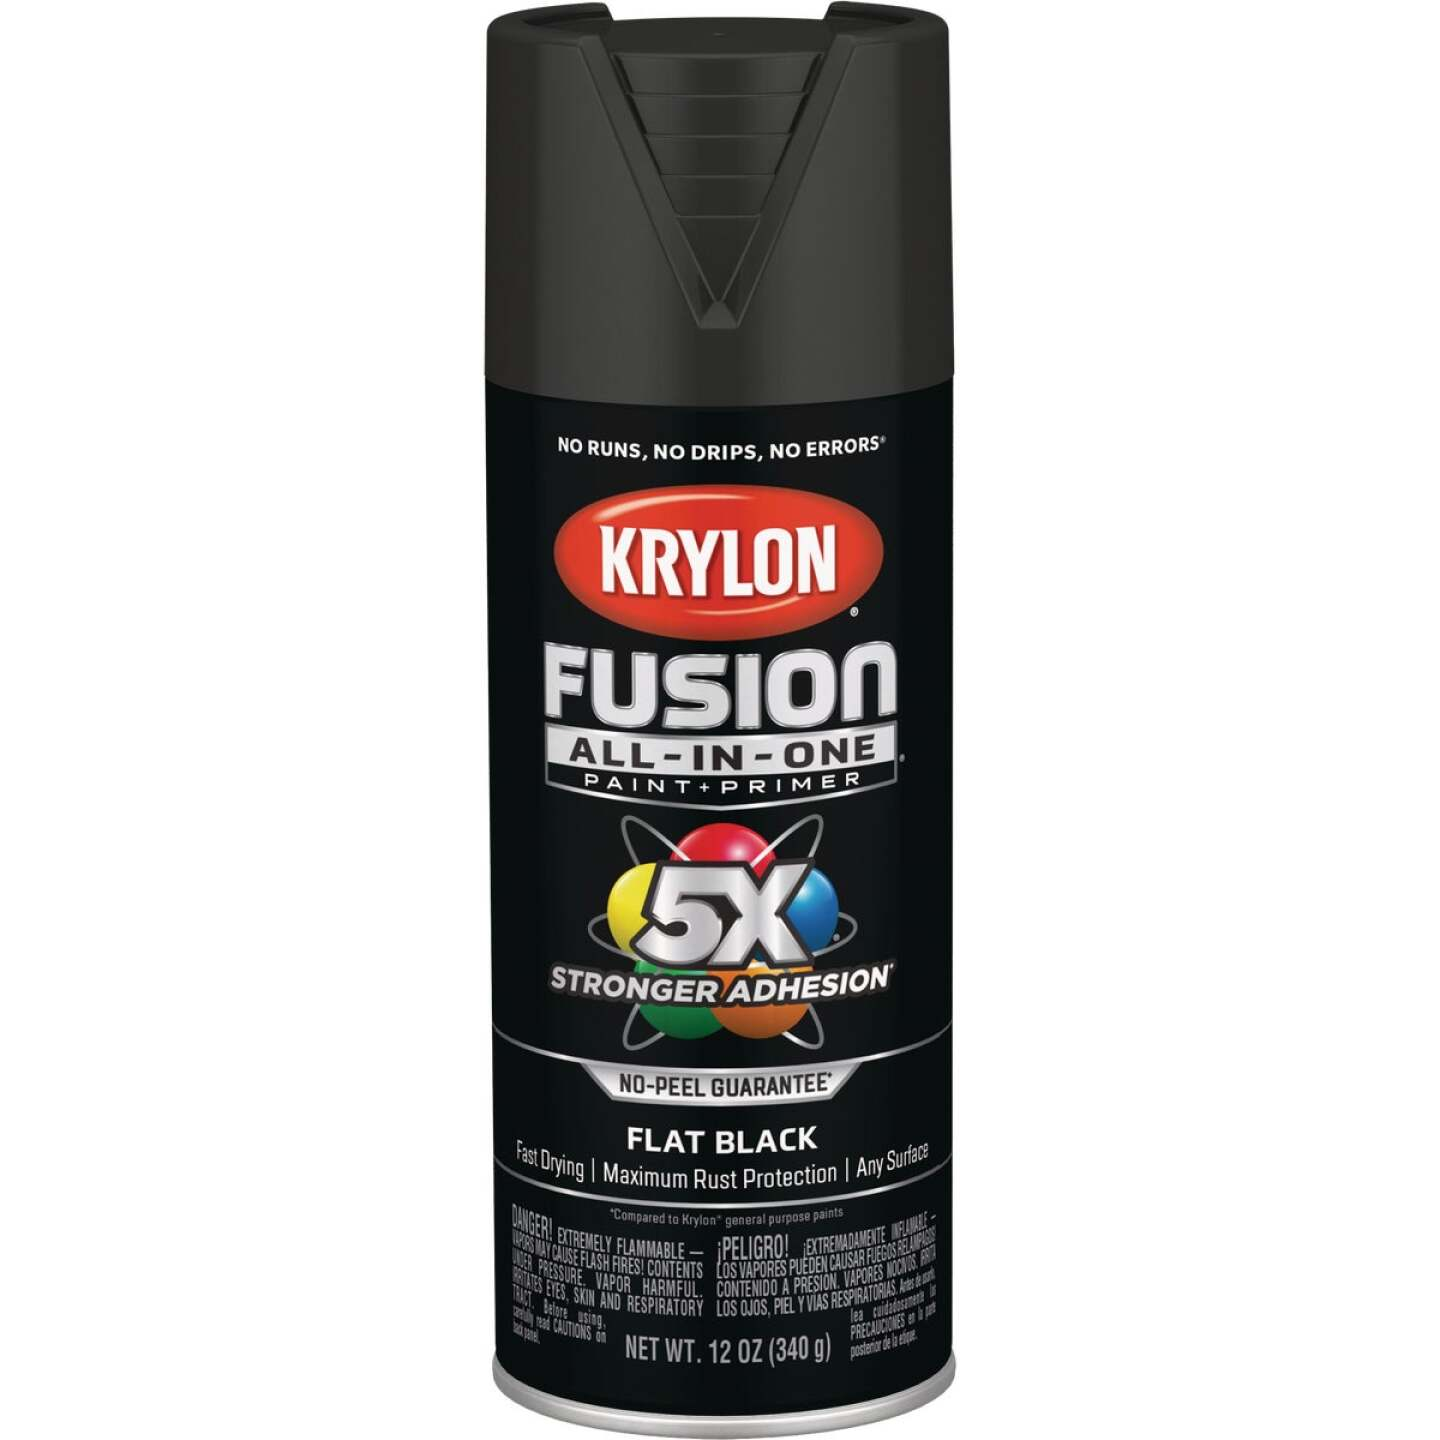 Krylon Fusion All-In-One Flat Spray Paint & Primer, Black Image 1